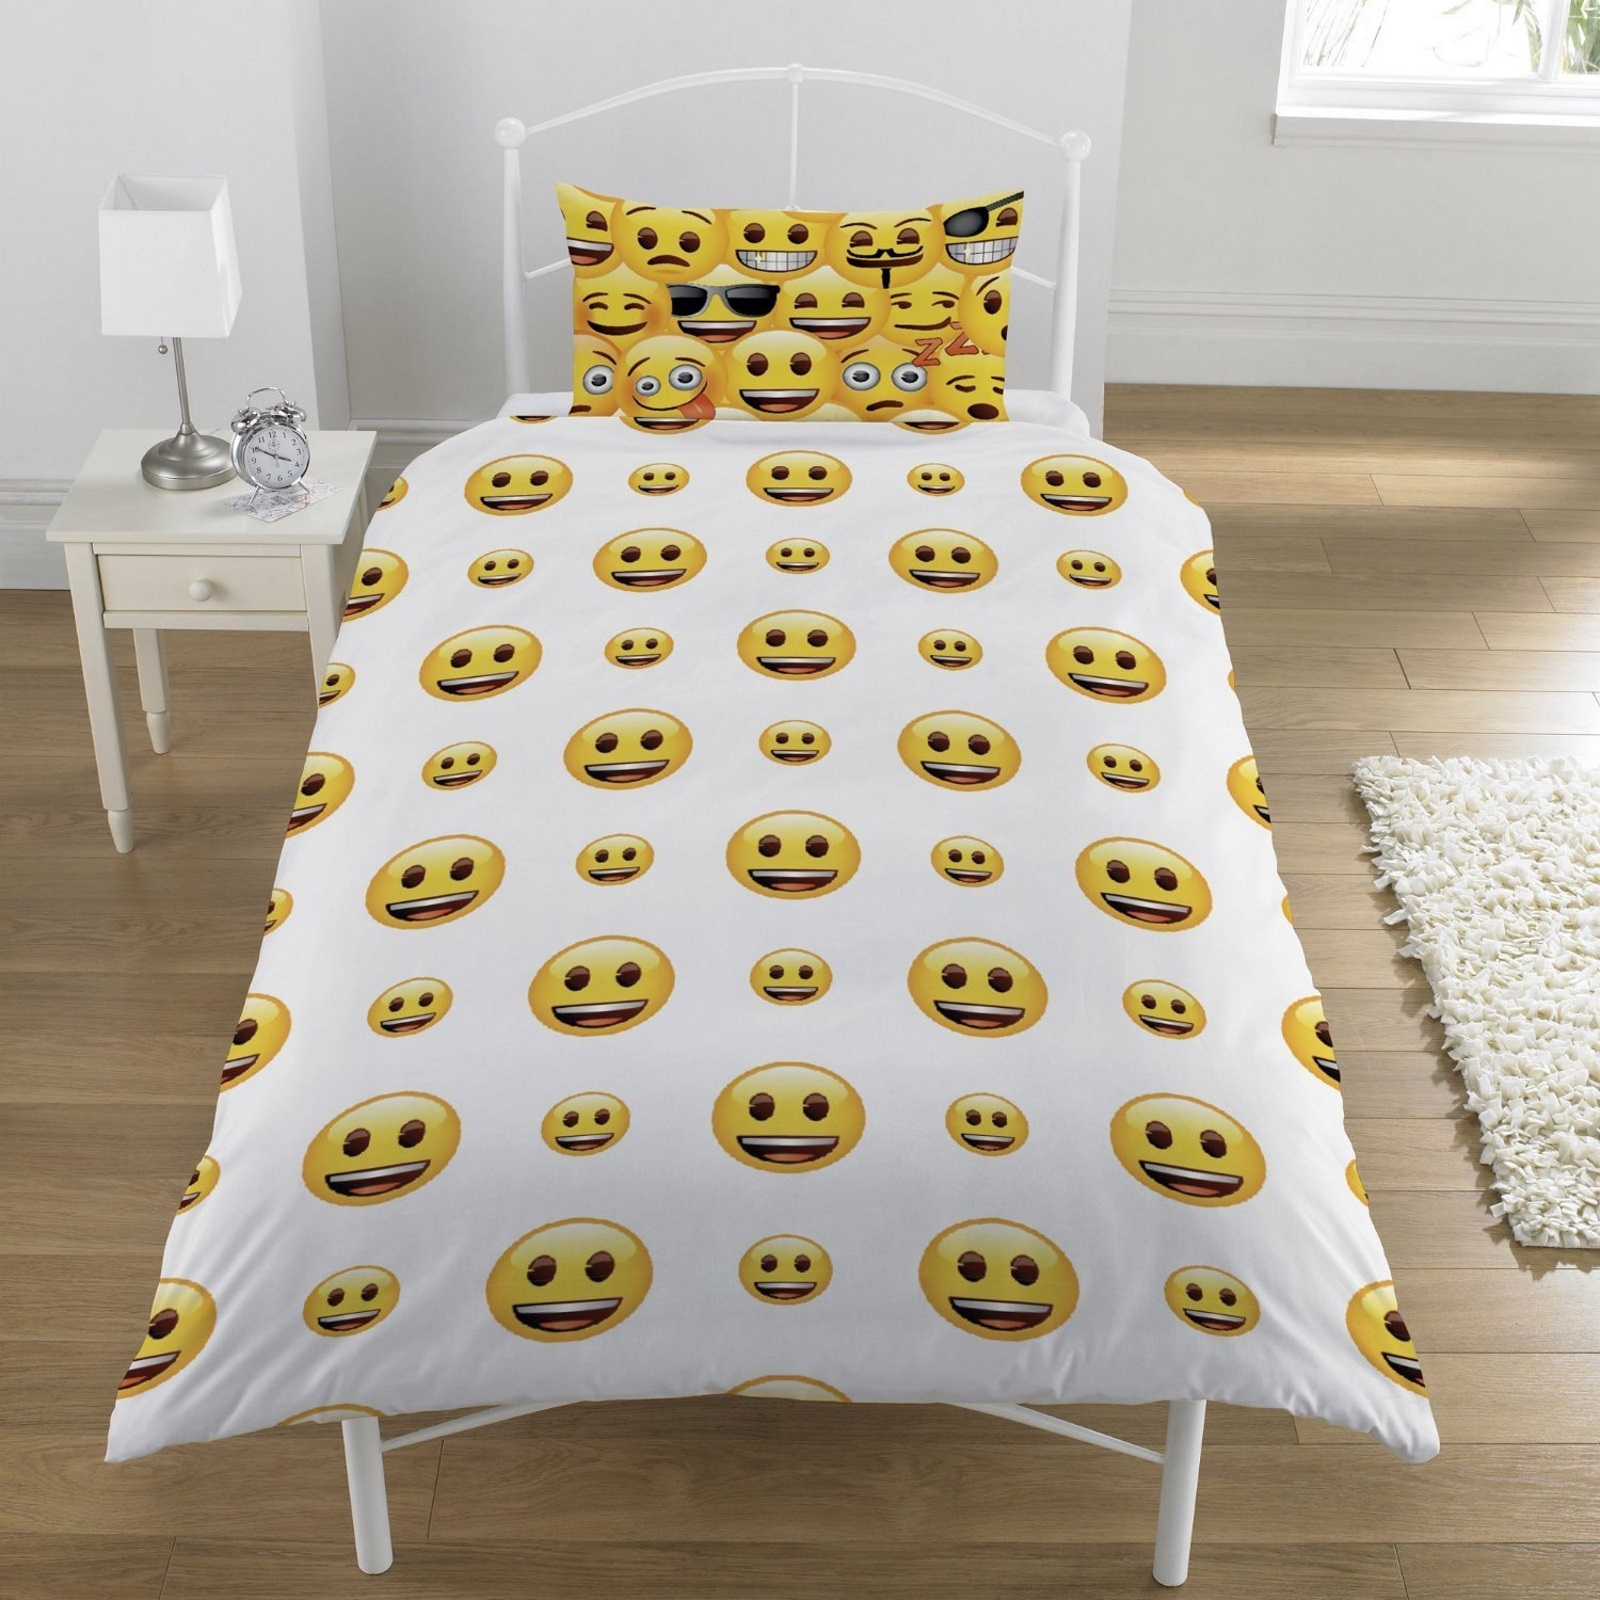 EMOJI SINGLE DUVET QUILT COVER BEDDING SET BOYS GIRLS KIDS ...